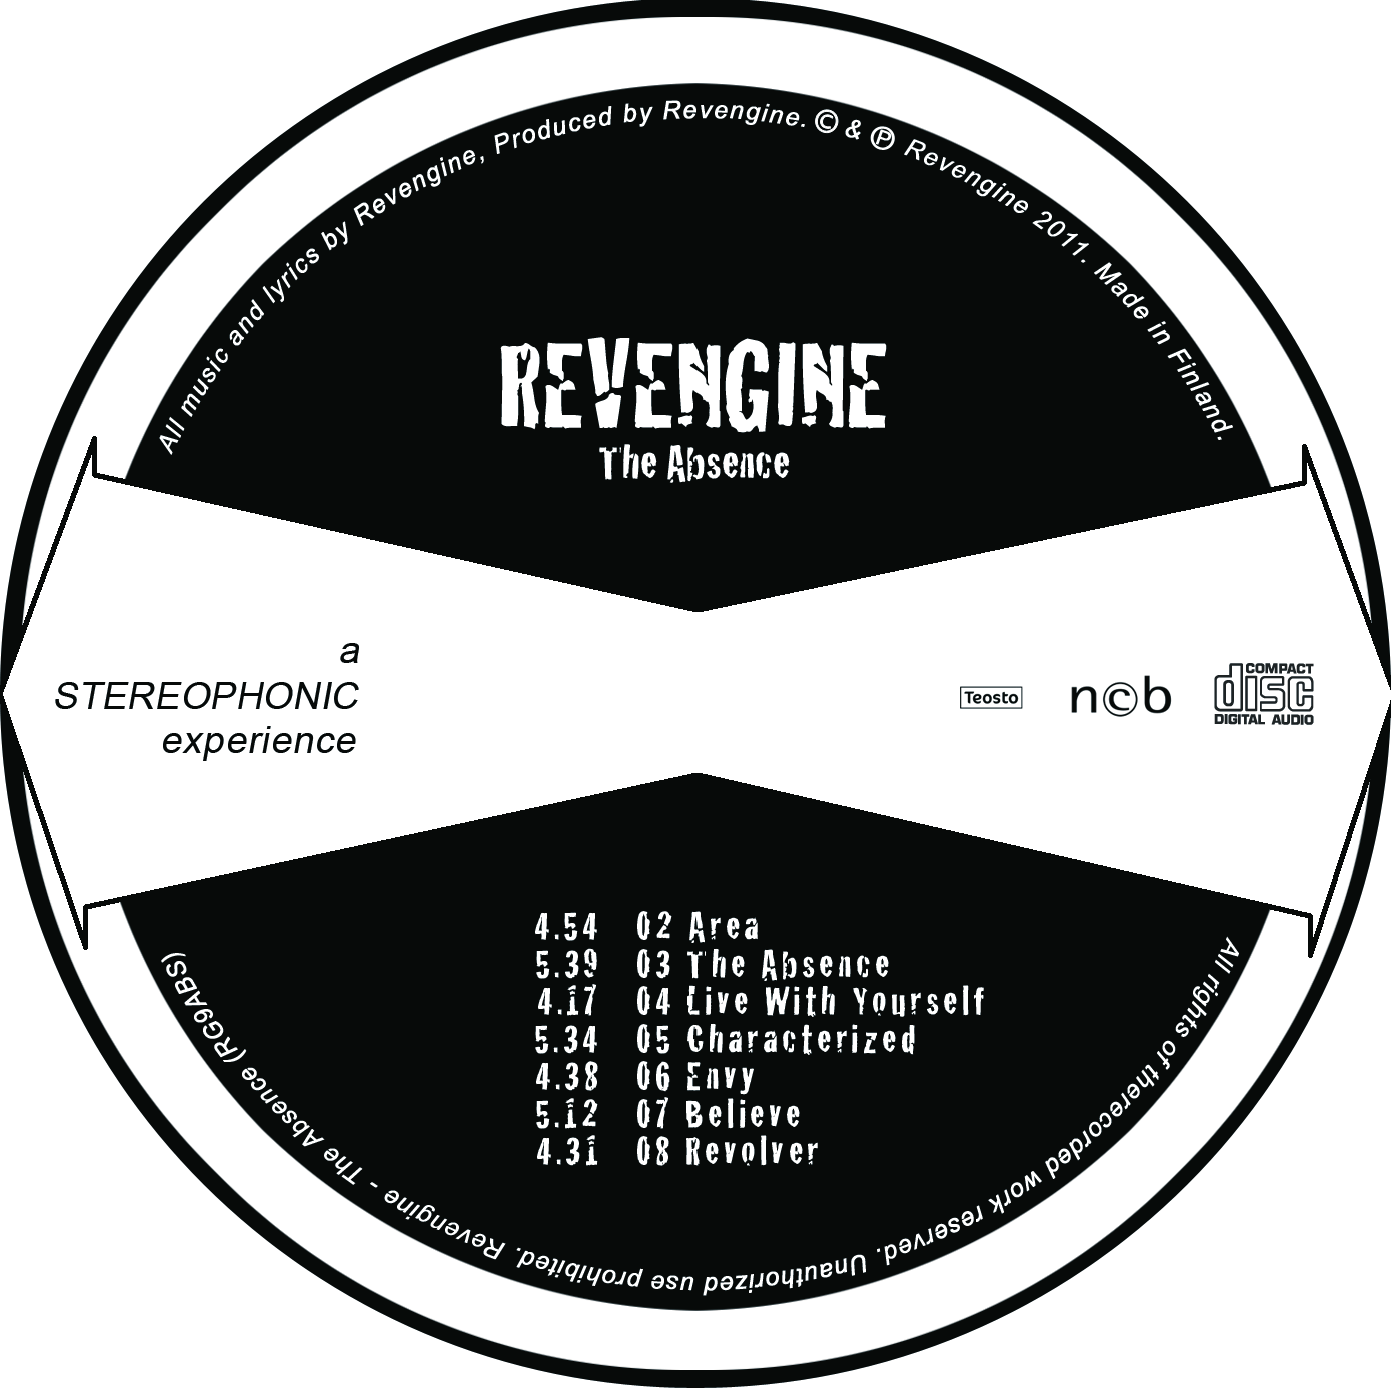 Revengine was included in british rock magazine fireworks british rock magazine fireworks wrote an article on revengine also our track envy was included in issue 51 compilation cd biocorpaavc Choice Image